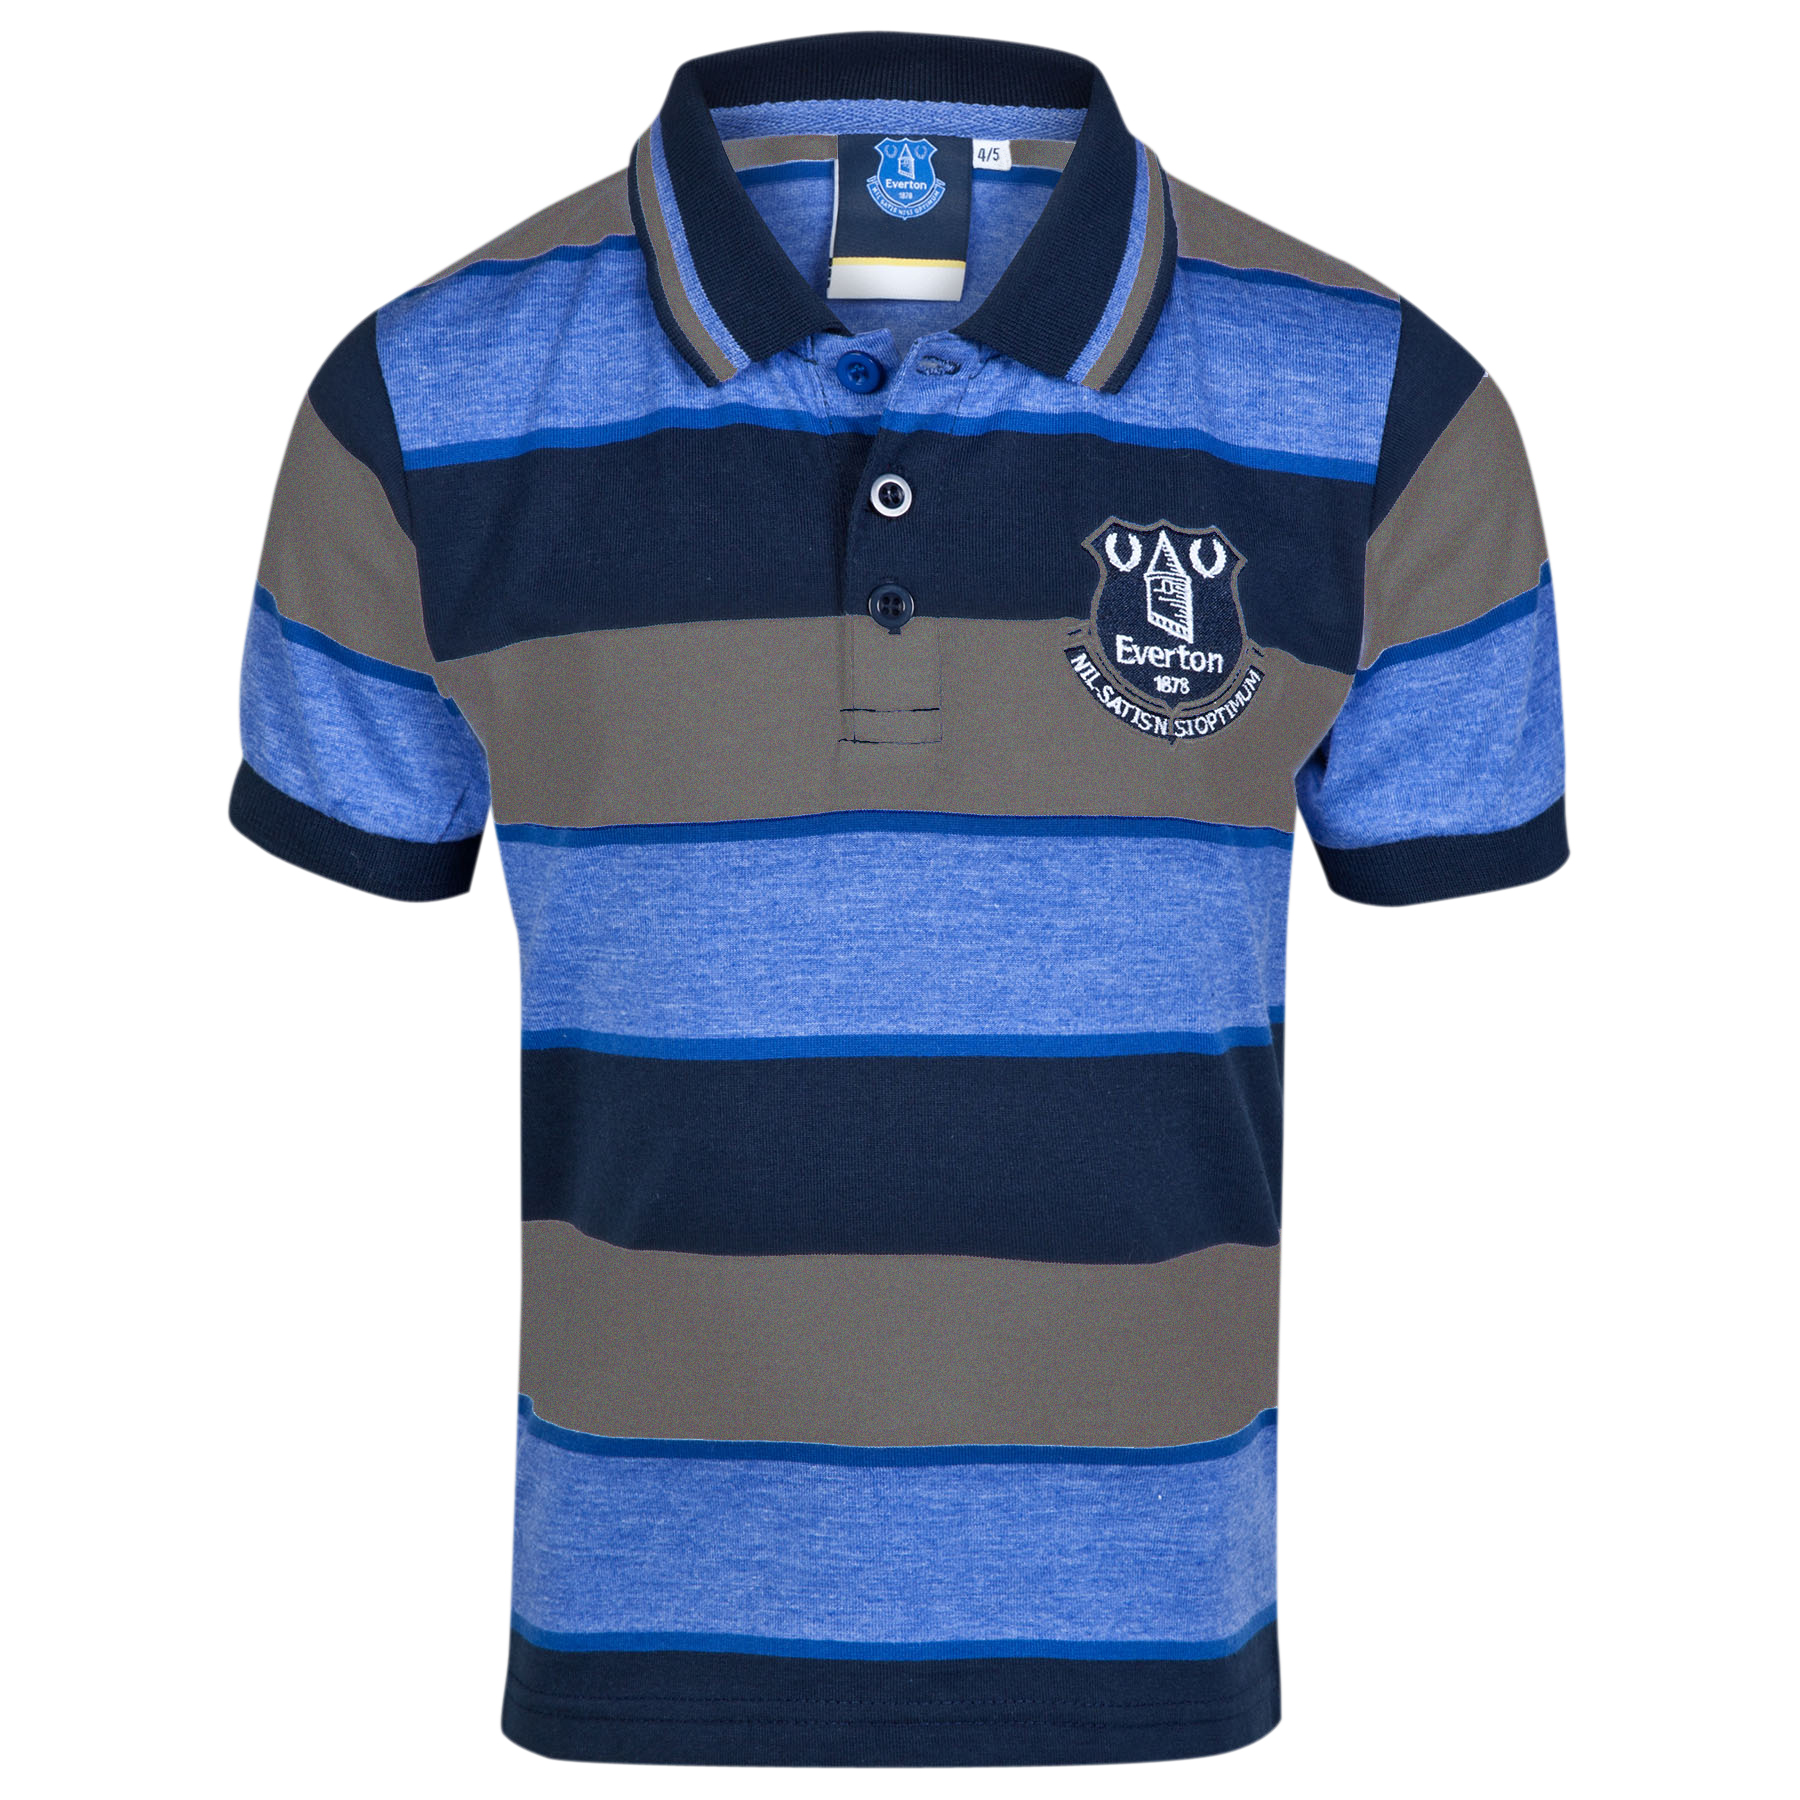 Everton Essential Stripe Polo Shirt - White/Multi - Infant Boys